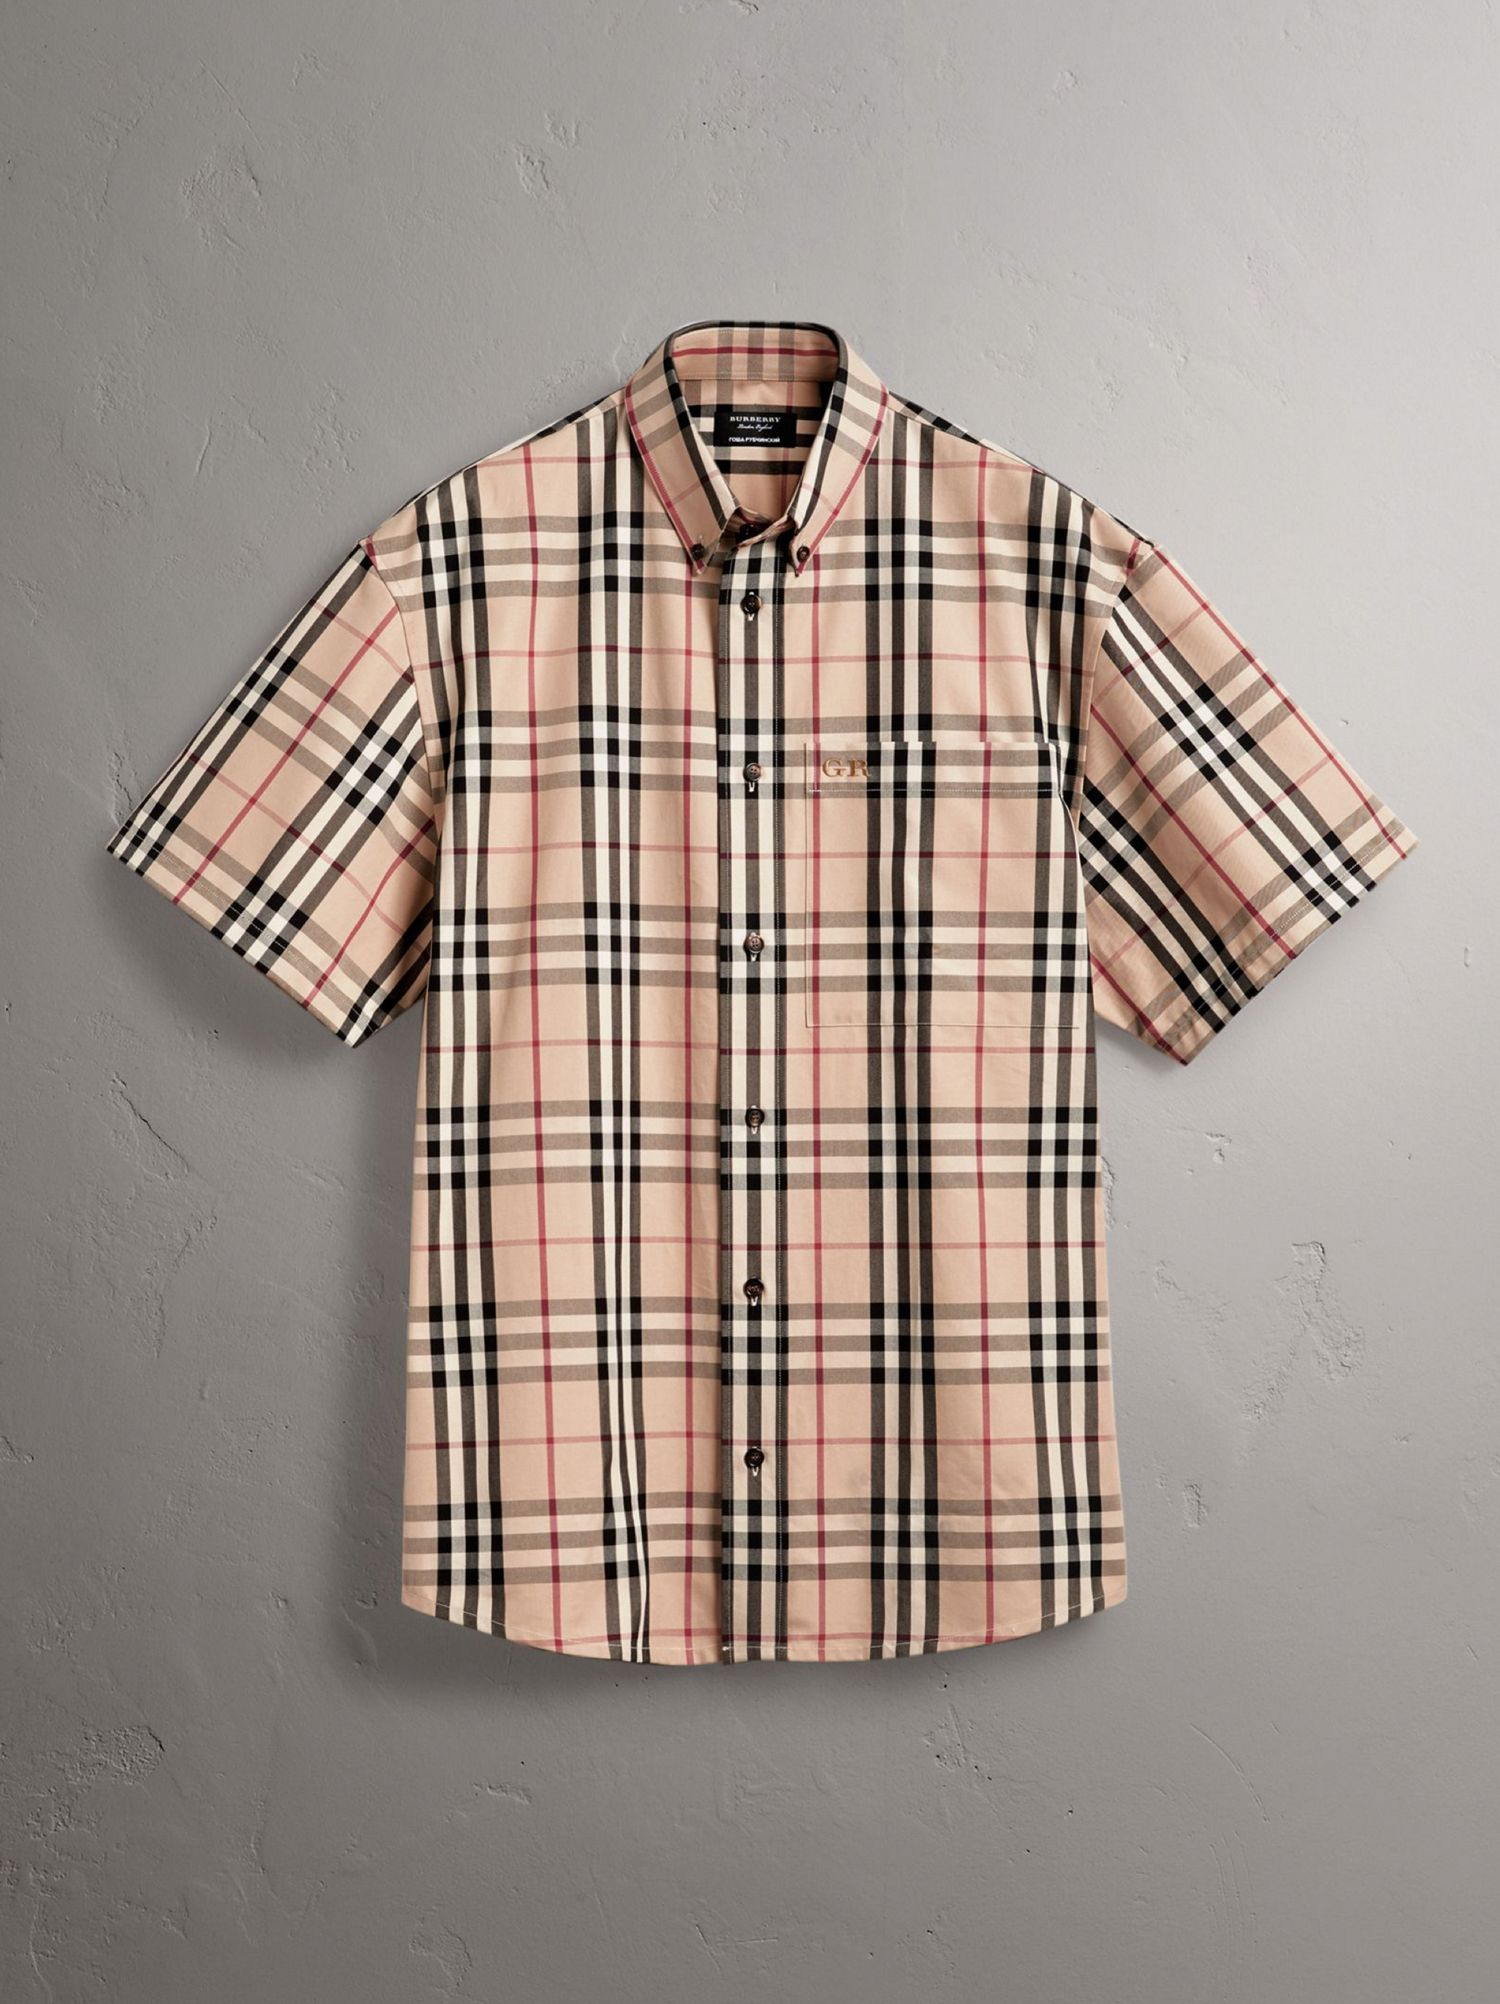 Gosha x Burberry Short-sleeve Check Shirt in Honey